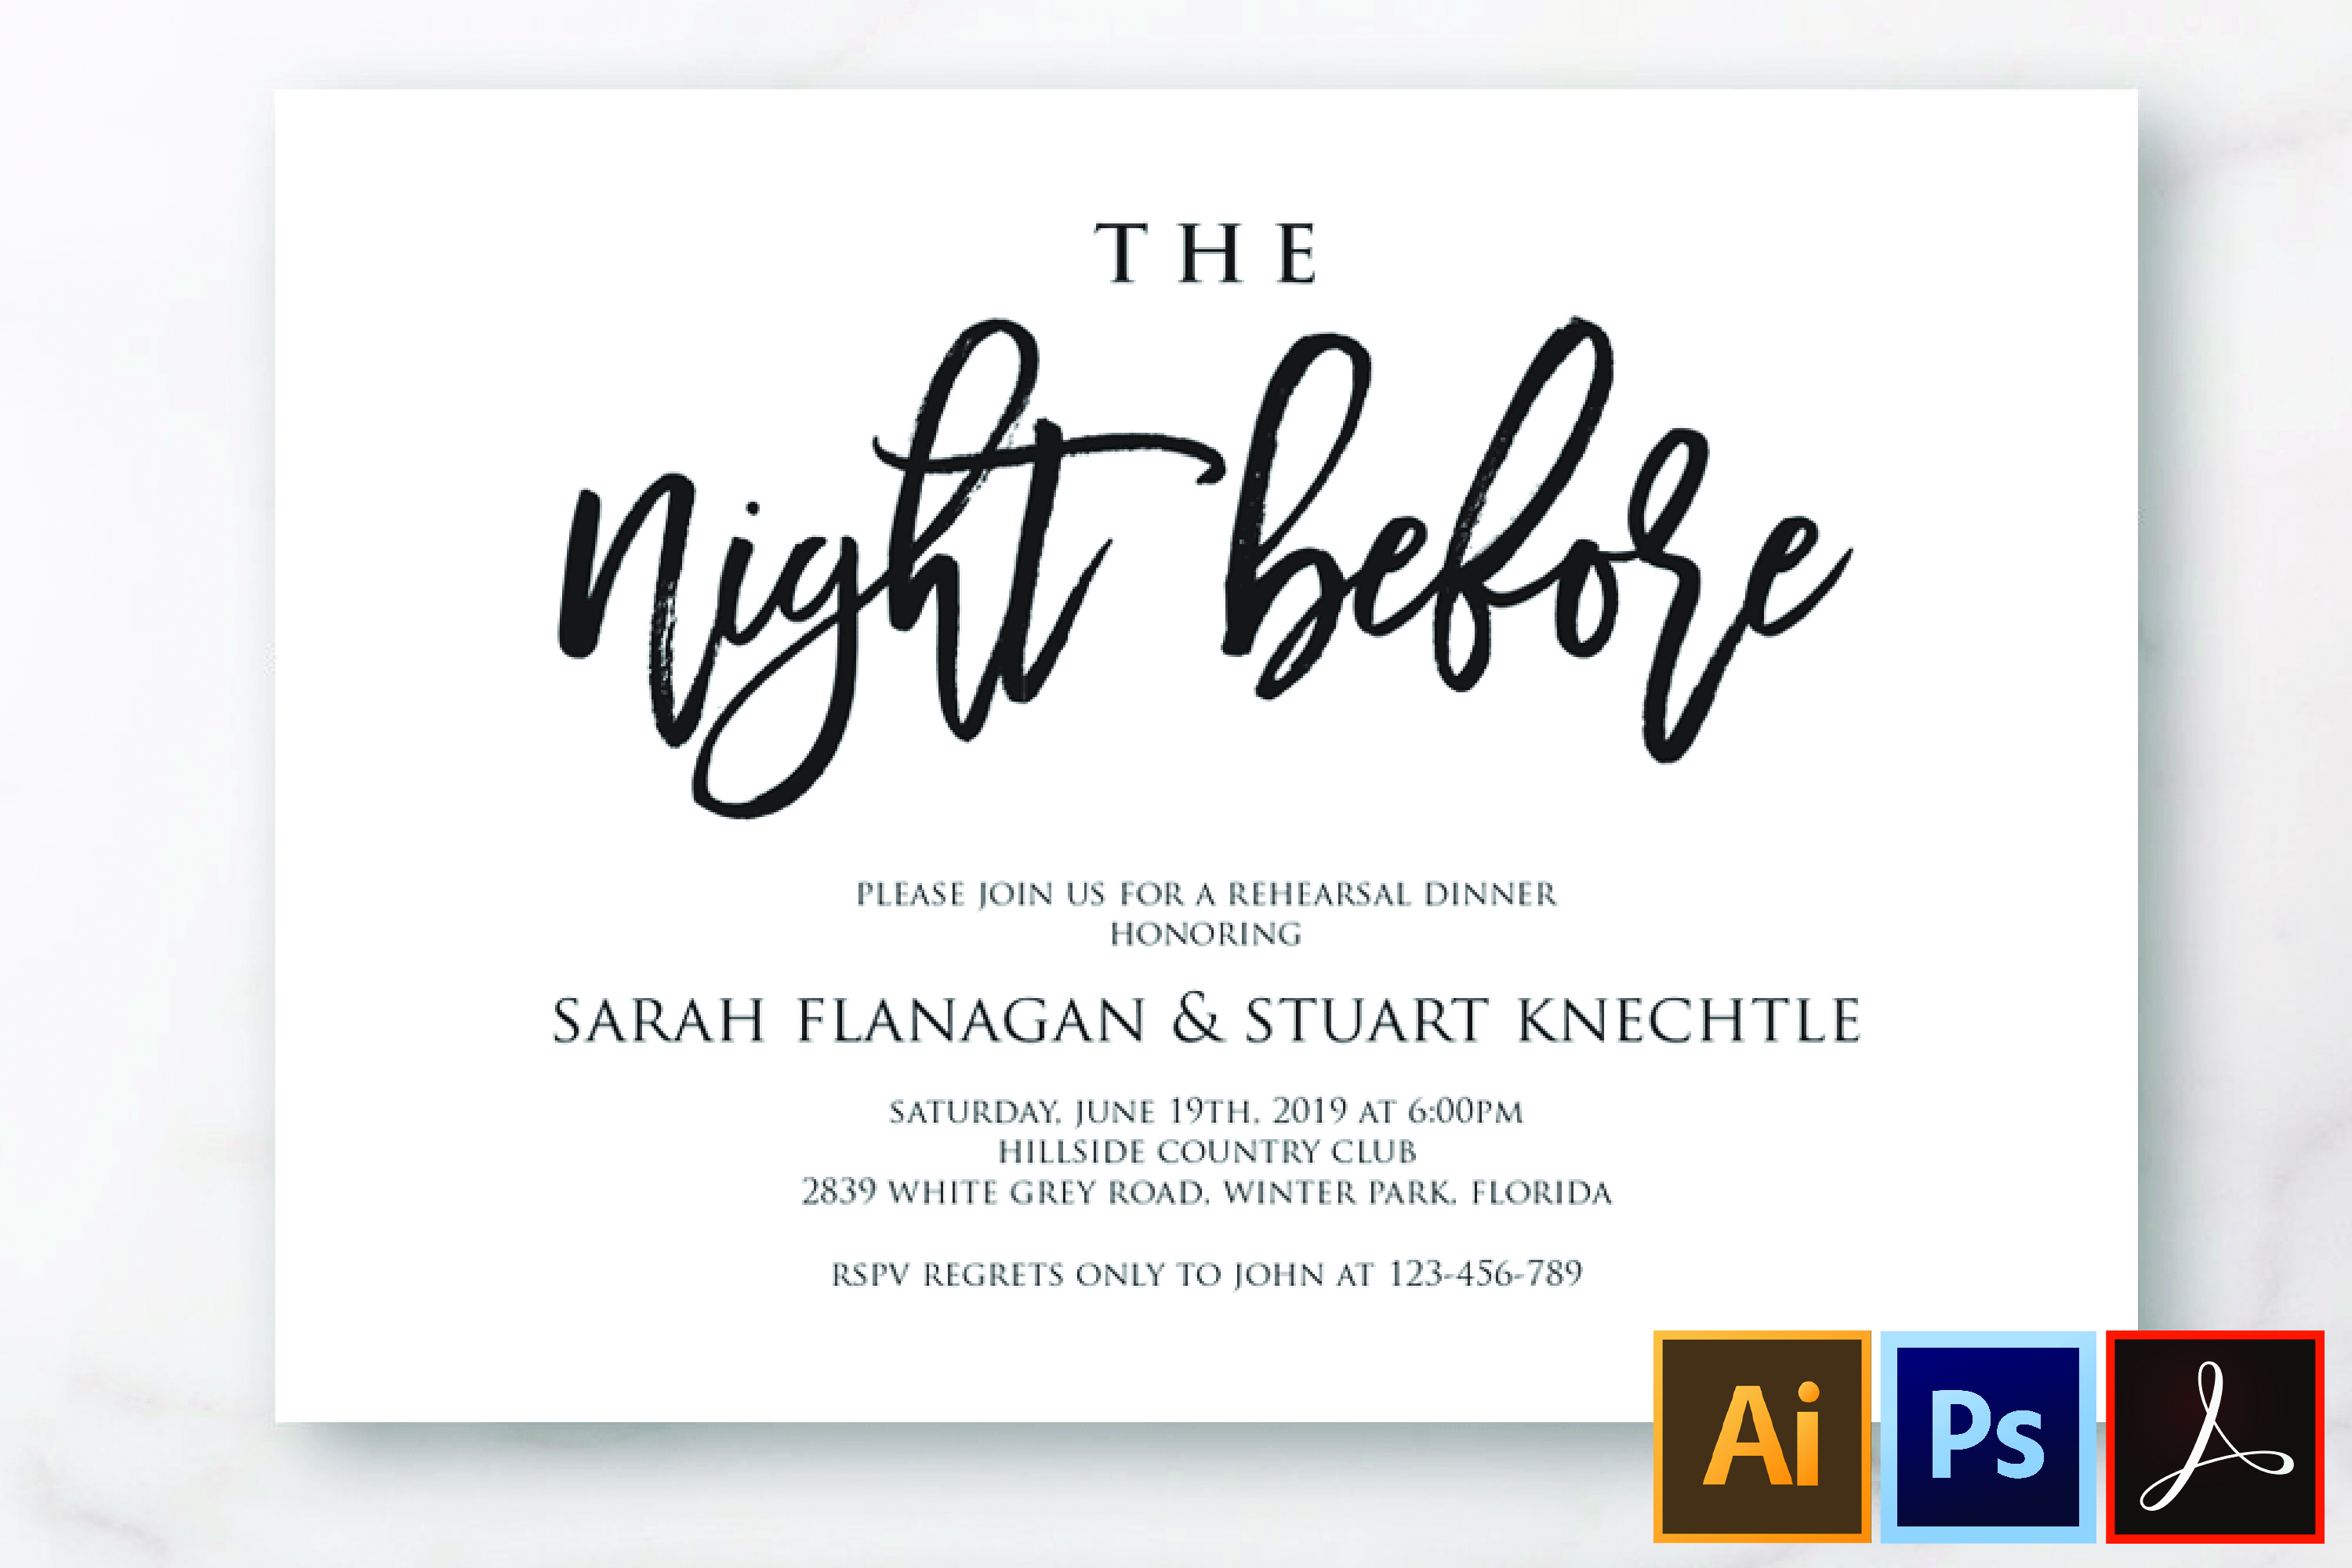 The Night Before Rehearsal Dinner Invitation Template Modern example image 1